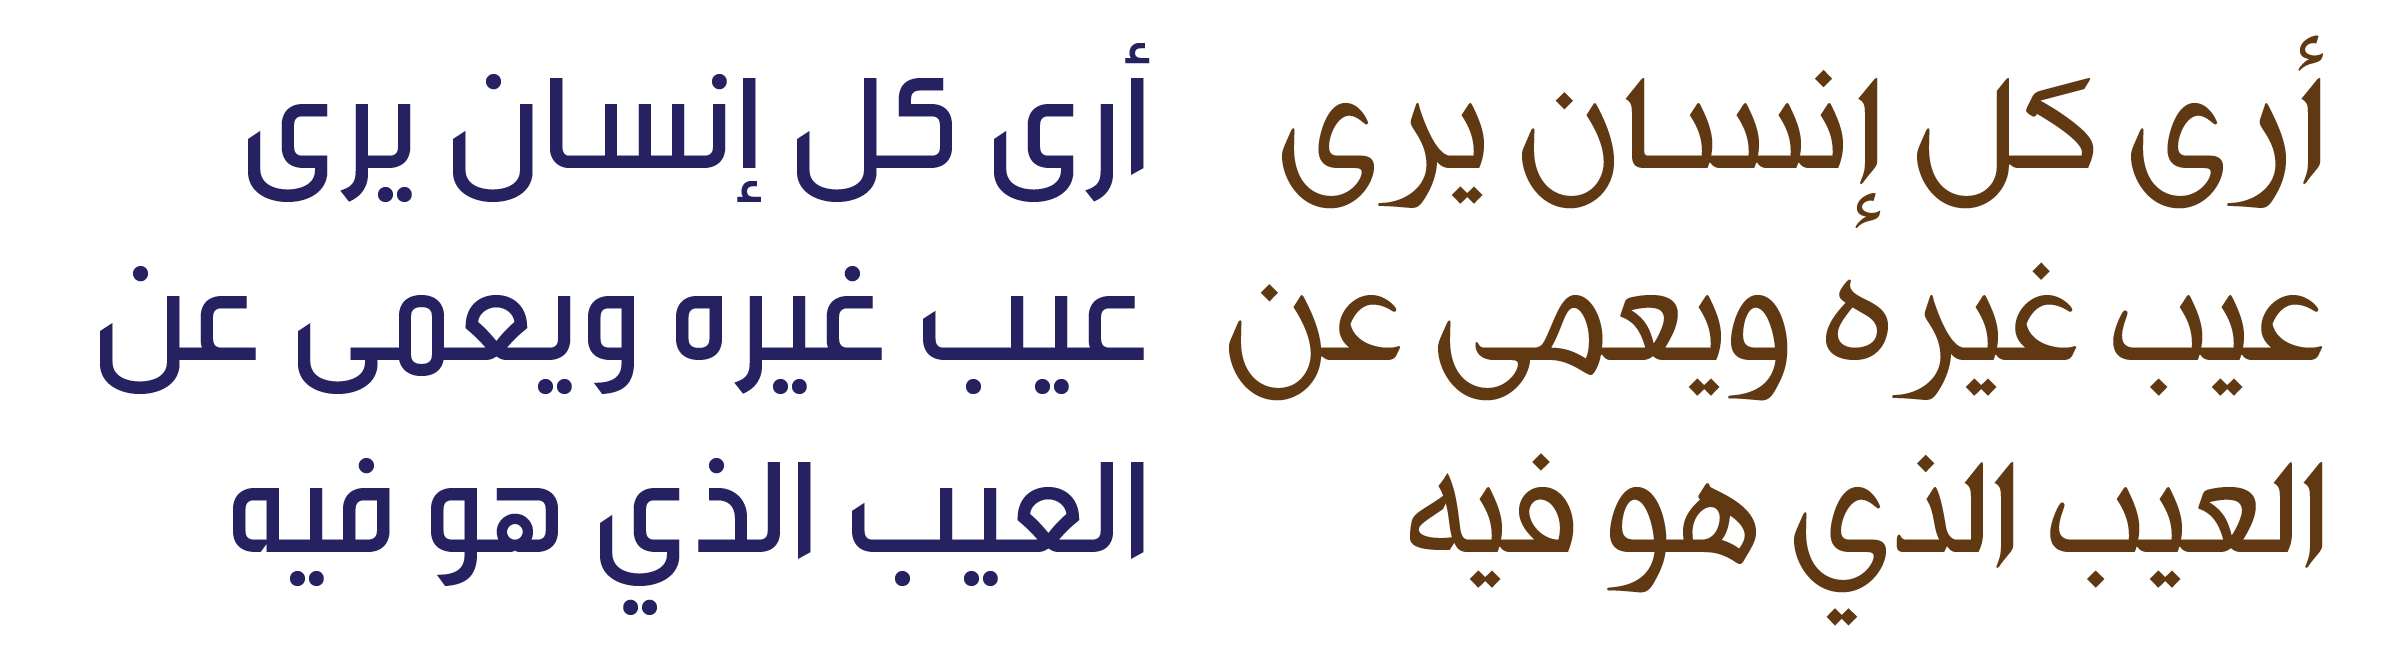 The same text set in the [Tanseek™](/families/tanseek) typeface, an Arabic script in Naskh style (right), and in [Tanseek™ Modern](/families/tanseek-modern), the companion font in Kufi style (left).